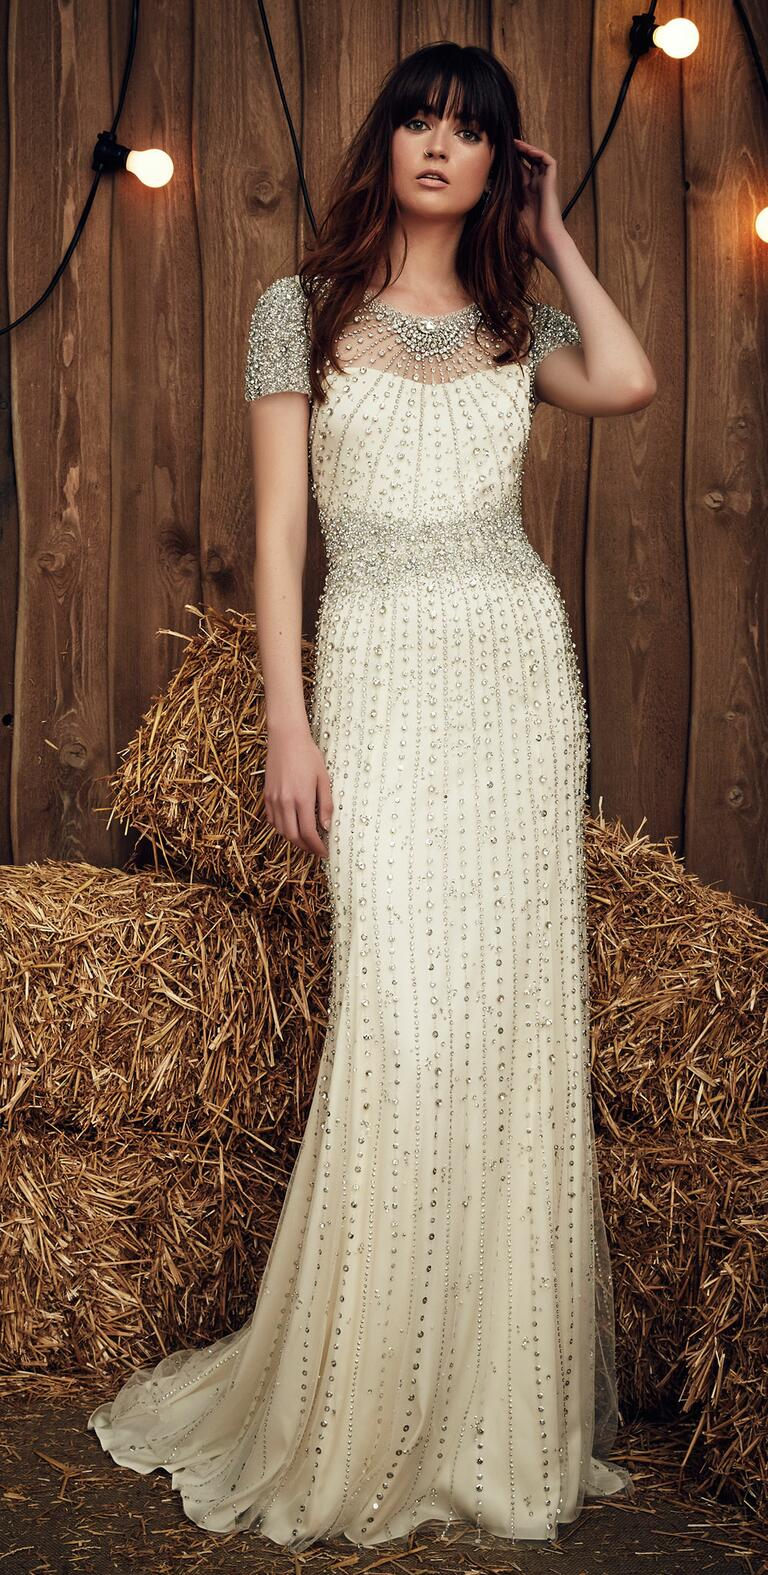 jenny packham wedding dresses bridal fashion week spring wedding dresses dallas Jenny Packham Spring Dallas gown with heavy crystal embellishment on the illusion neckline and sleeves